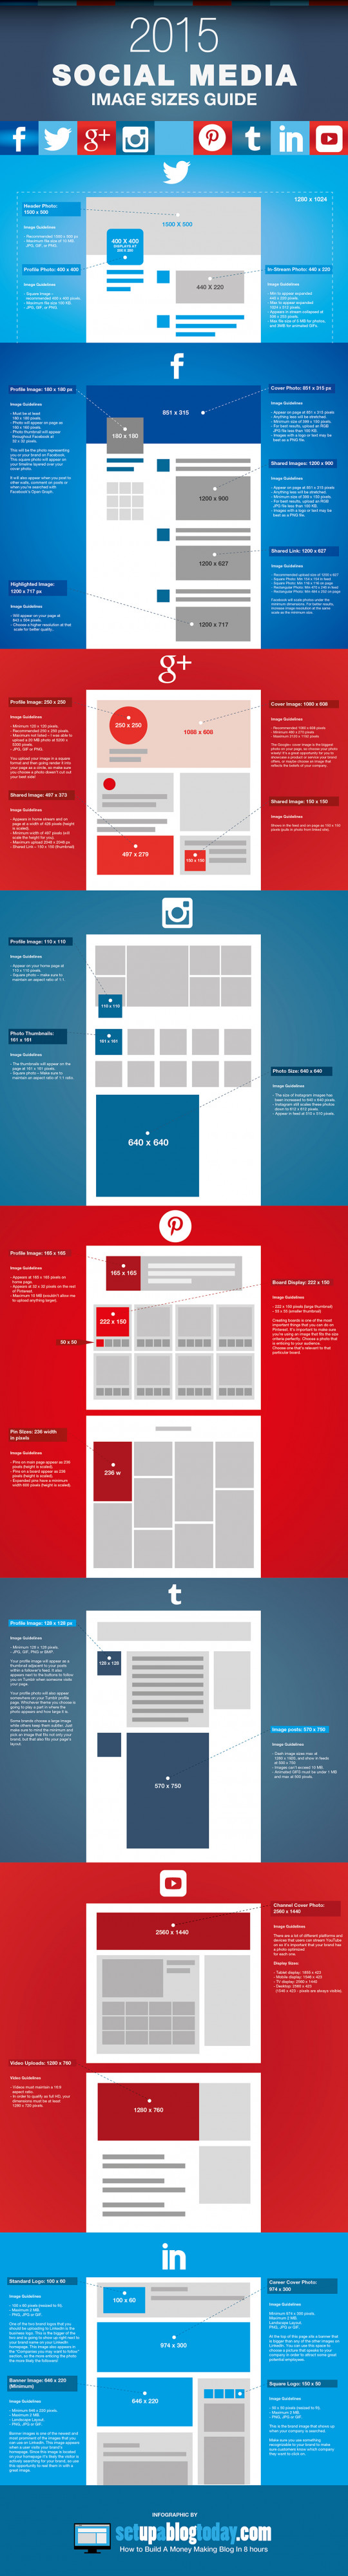 Social Media Image Size Cheat Sheet 2015